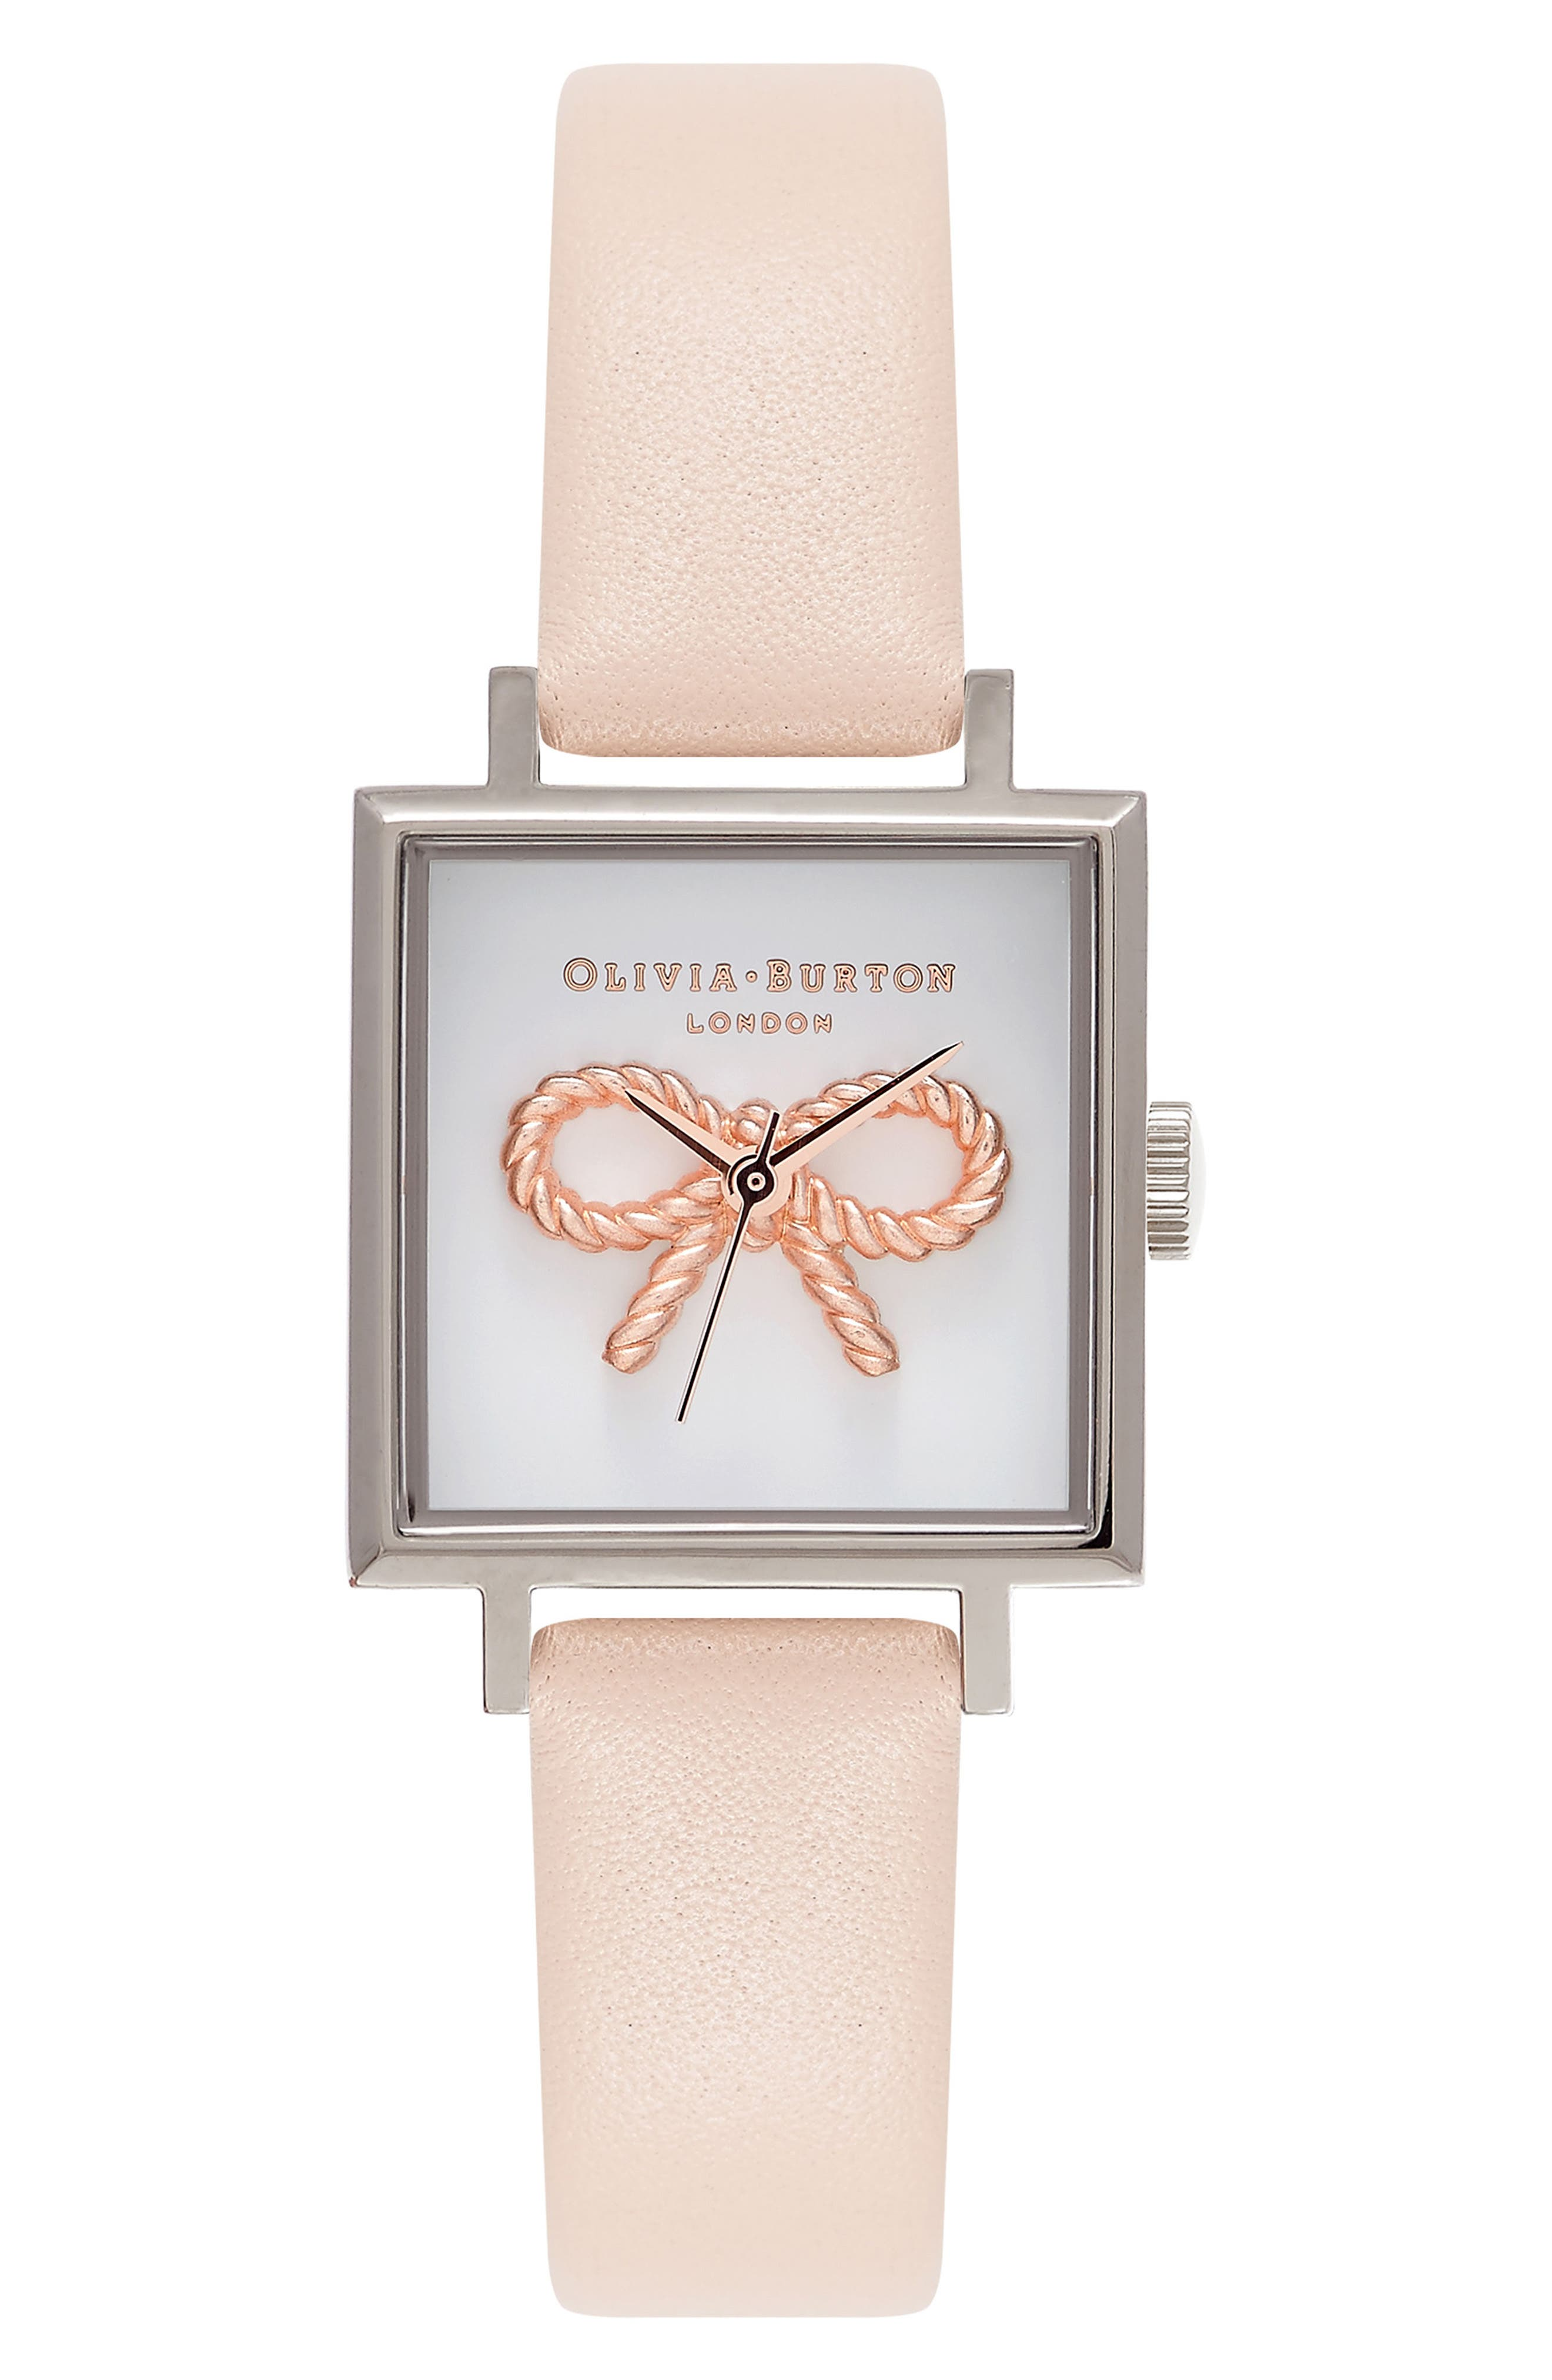 Main Image - Olivia Burton Vintage Bow Square Leather Strap Watch, 23mm